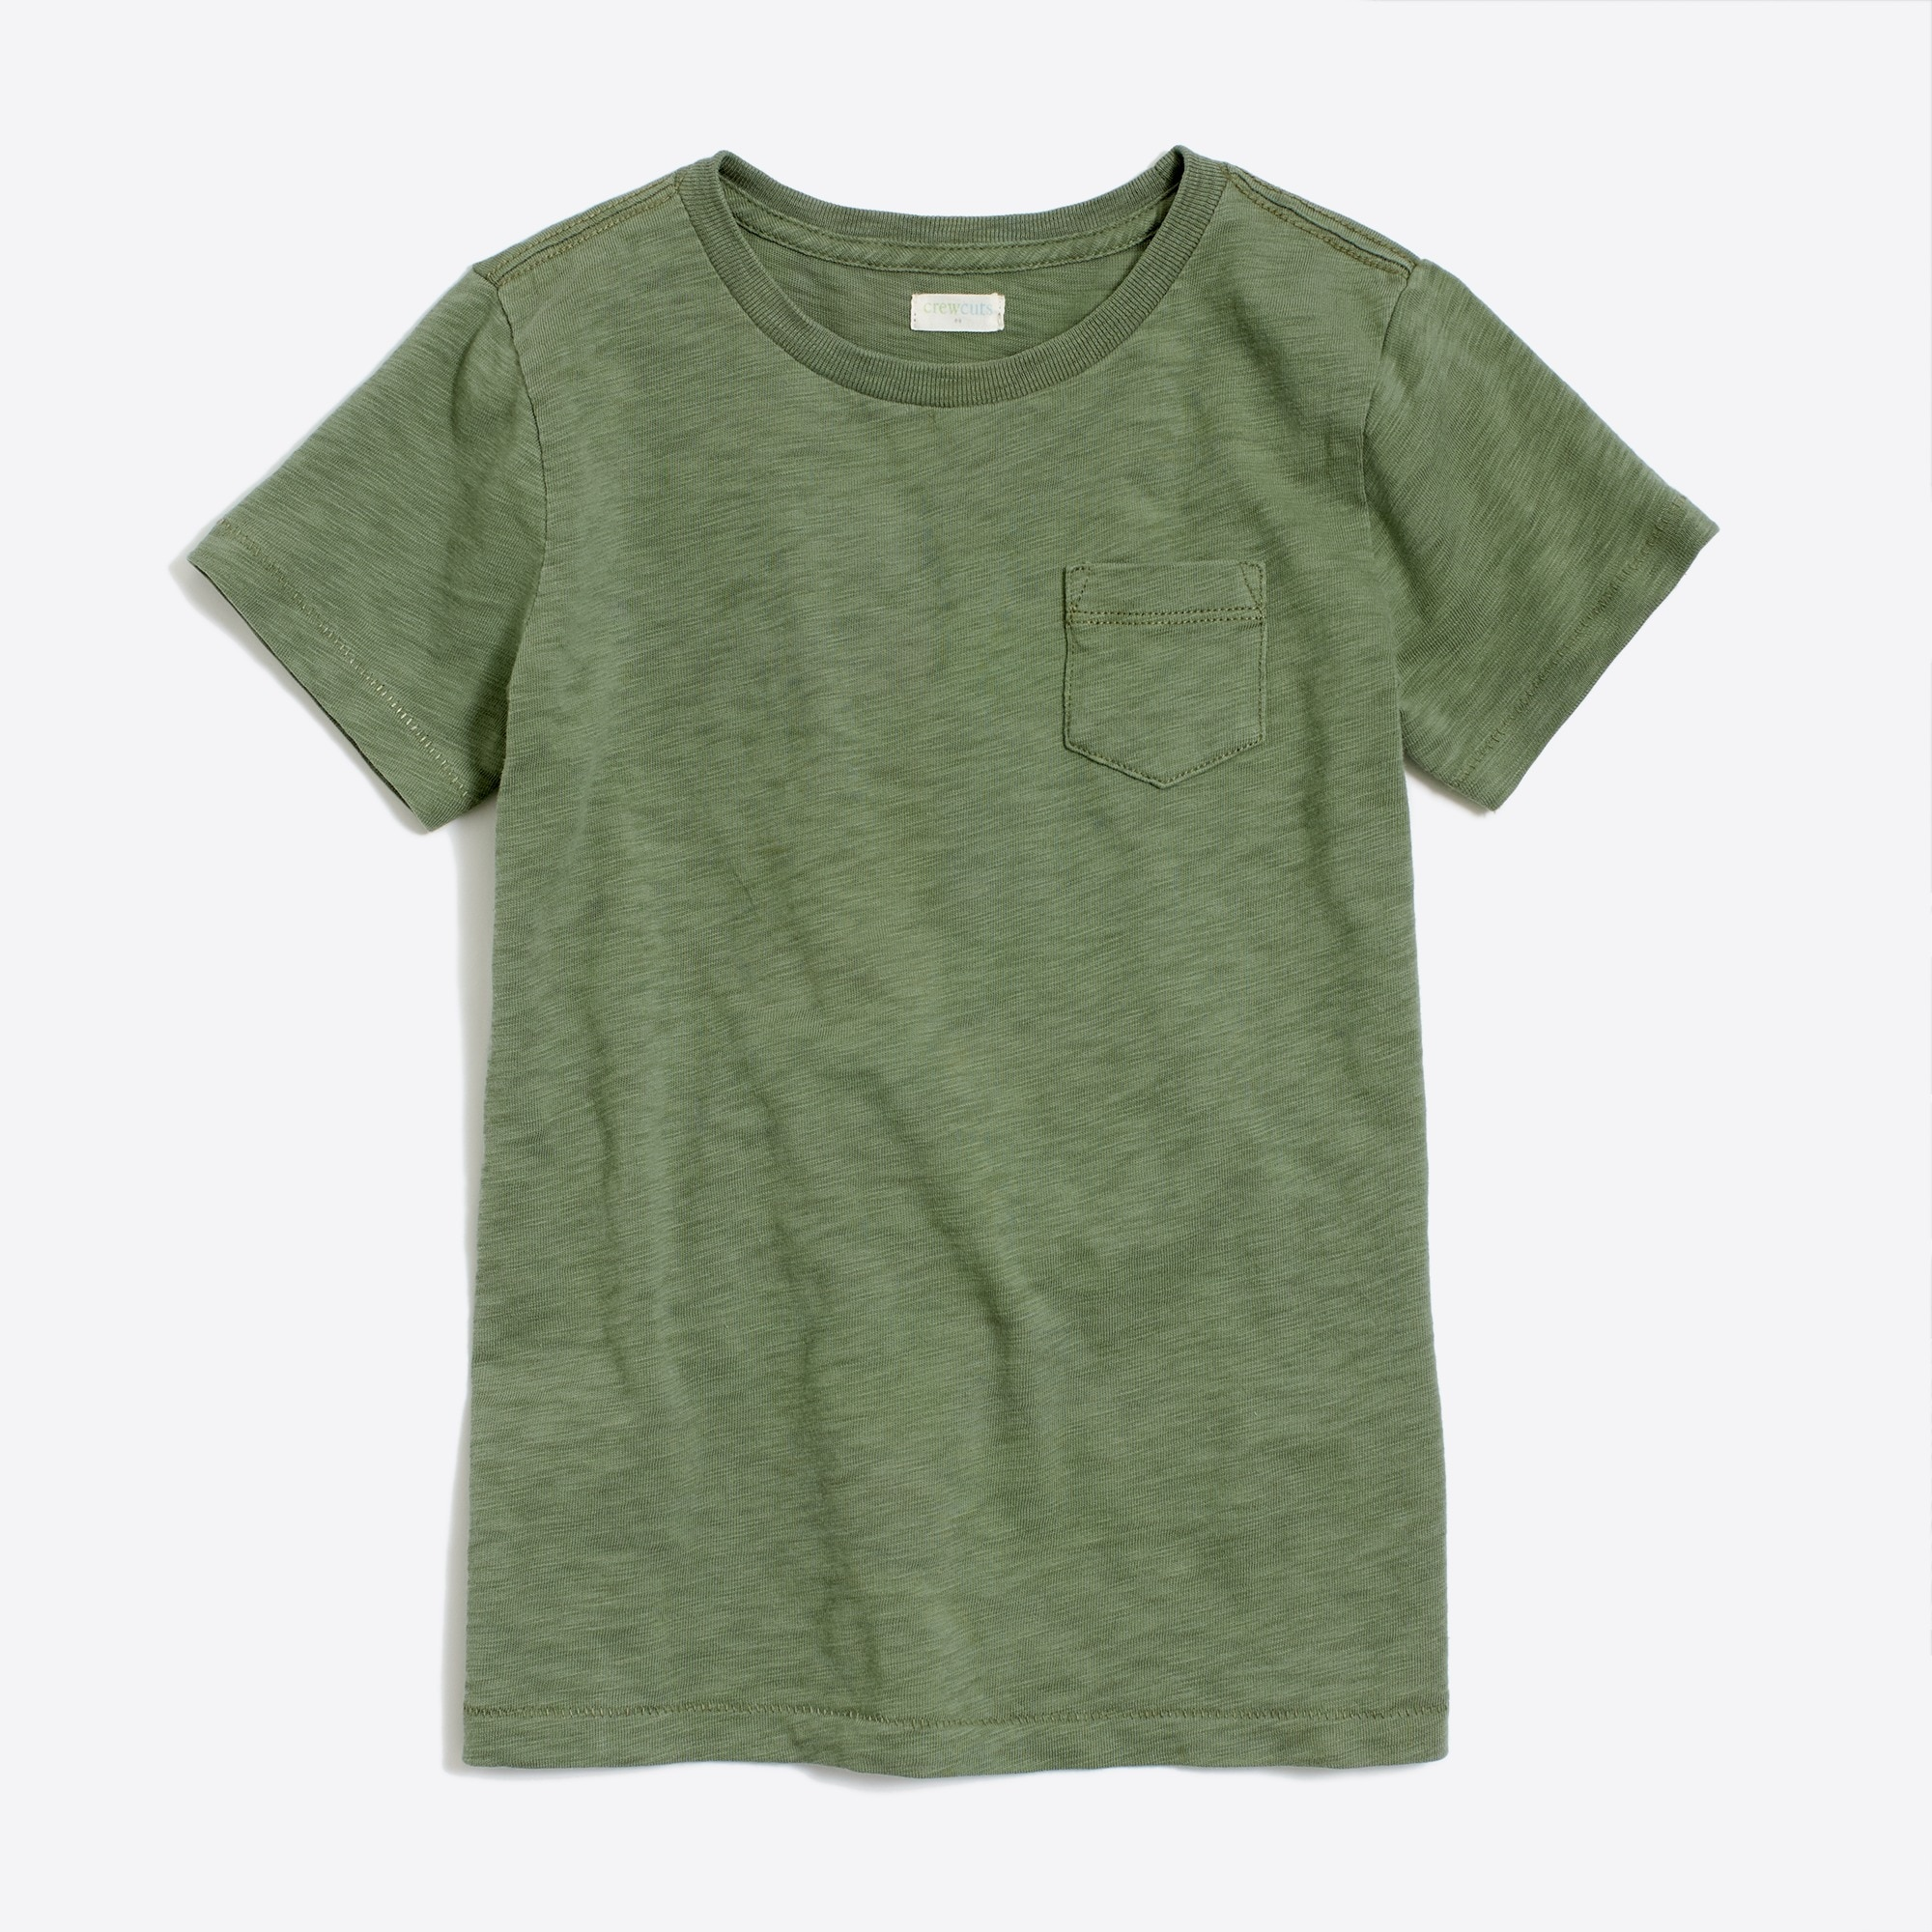 Kids' sunwashed garment-dyed pocket T-shirt factoryboys the camp shop c